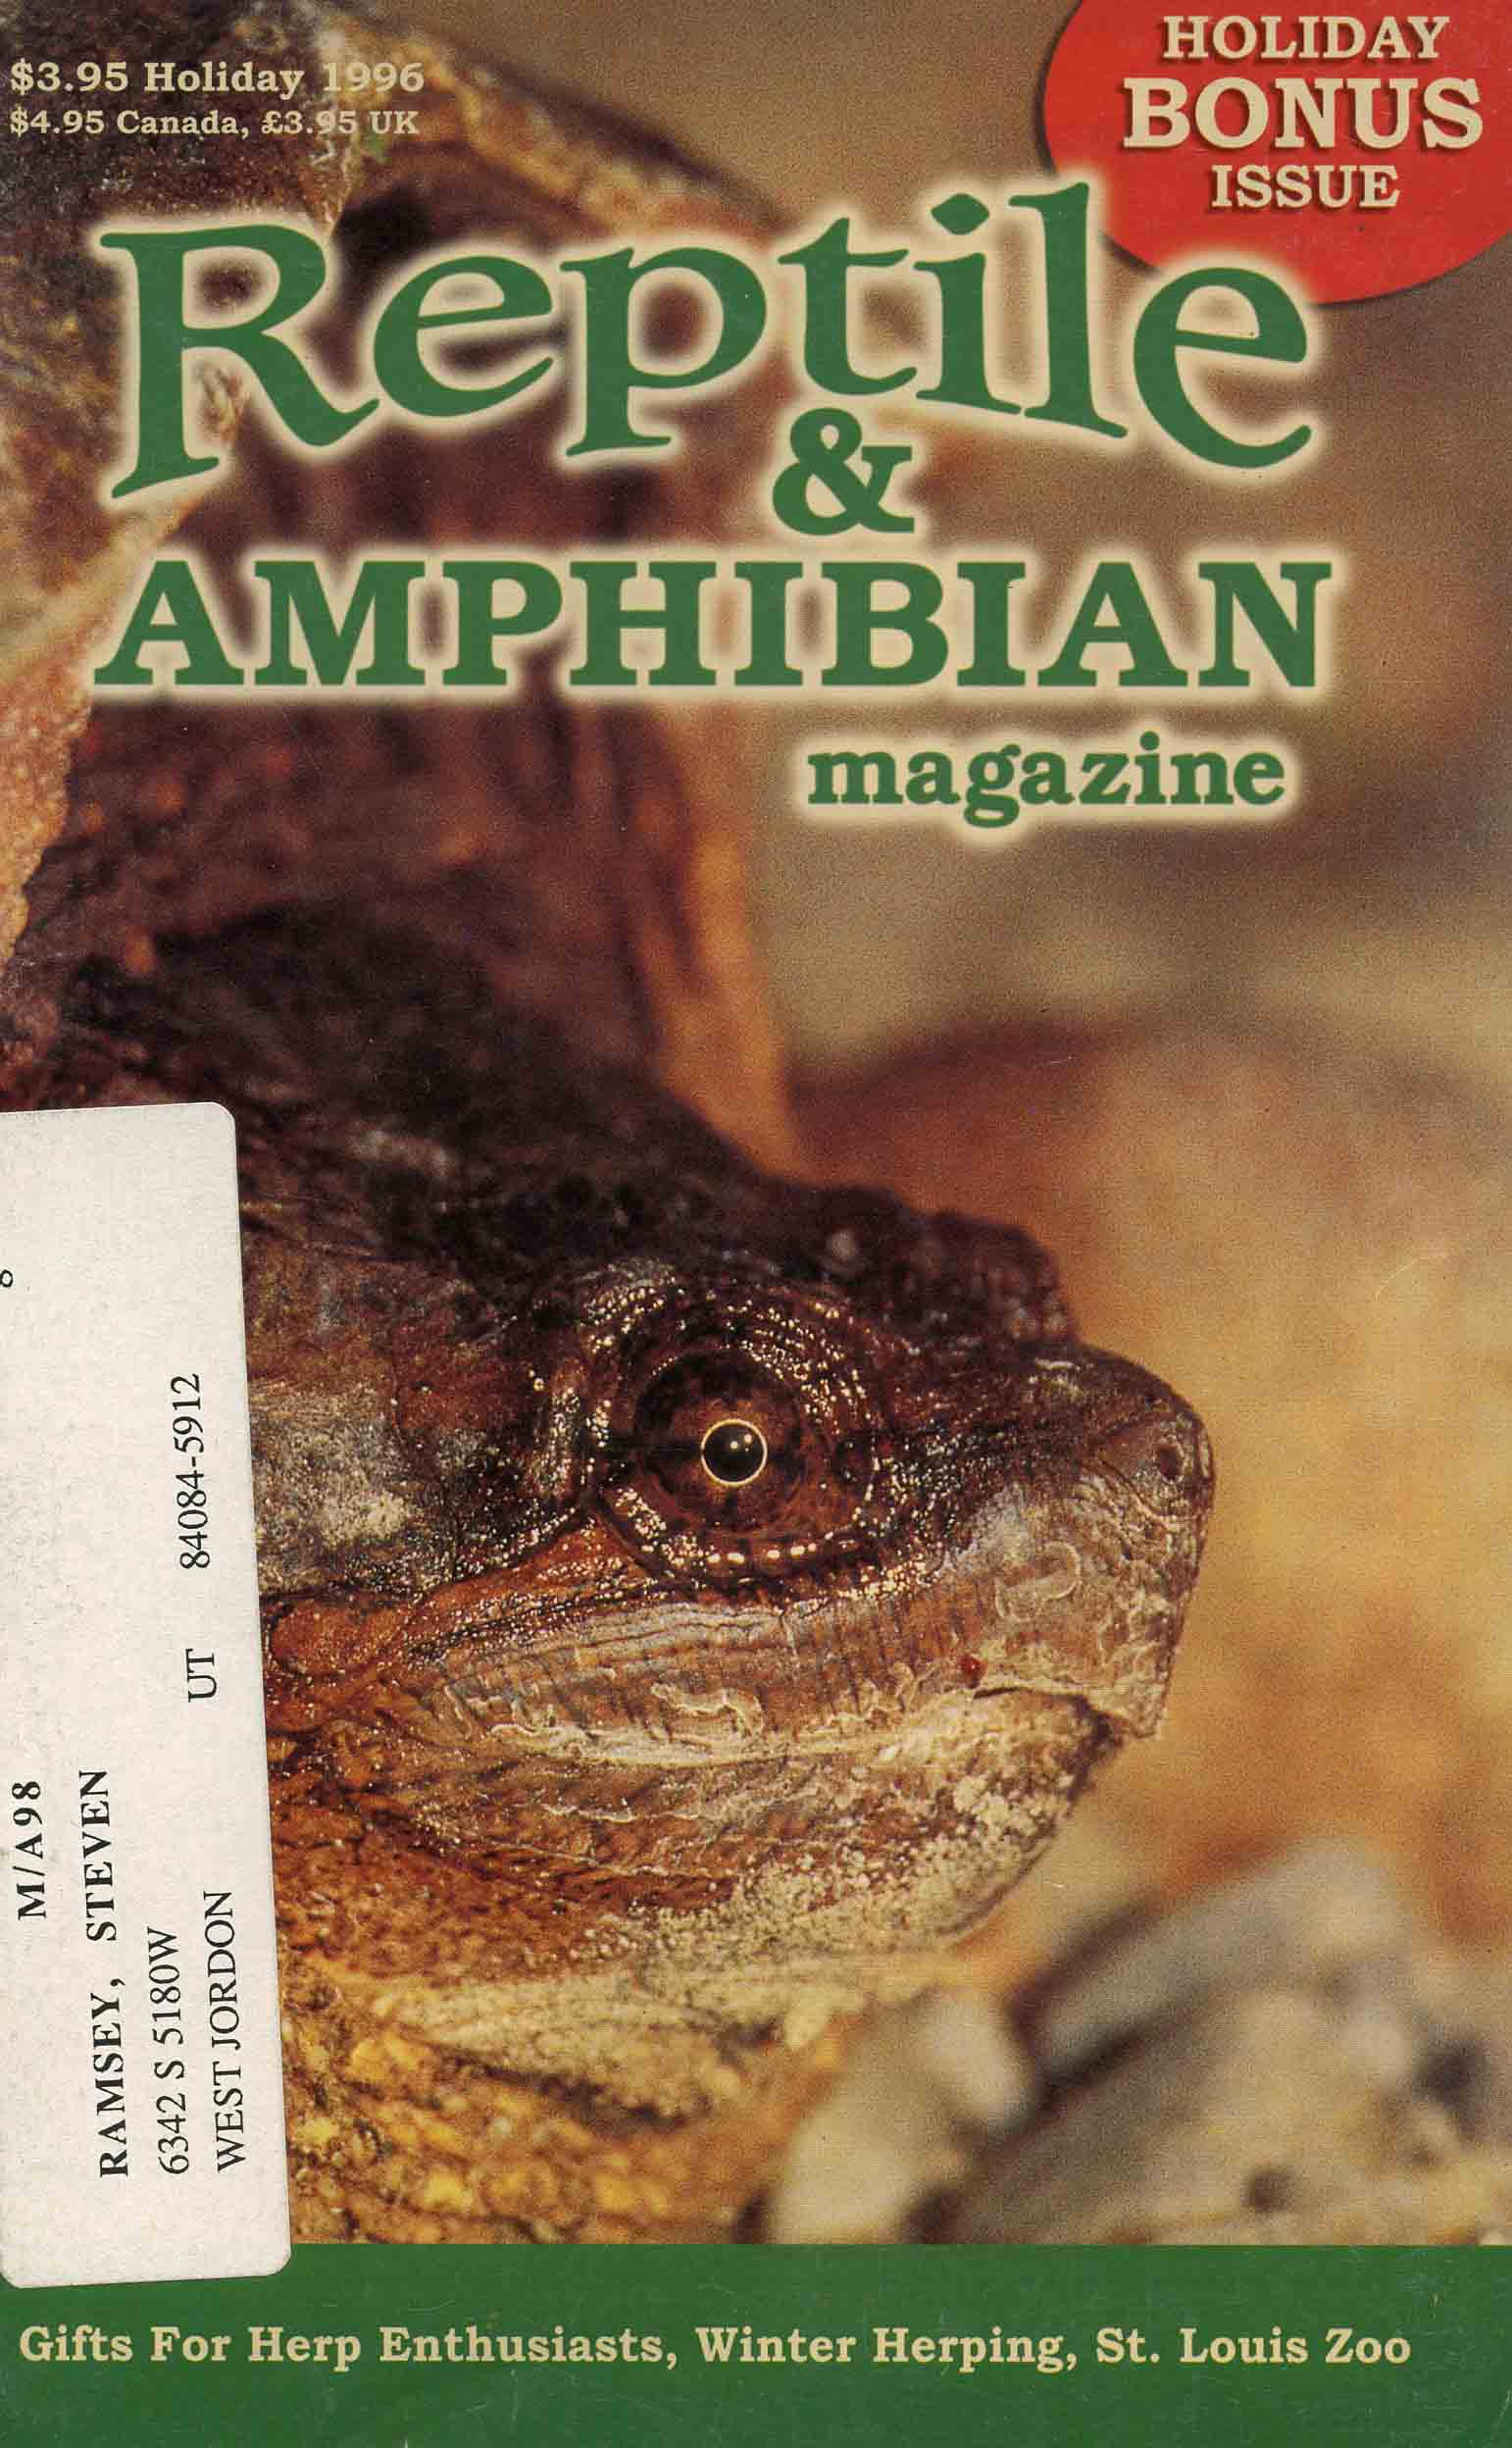 Image for Reptile & Amphibian Magazine, Holiday Bonus Issue 1996